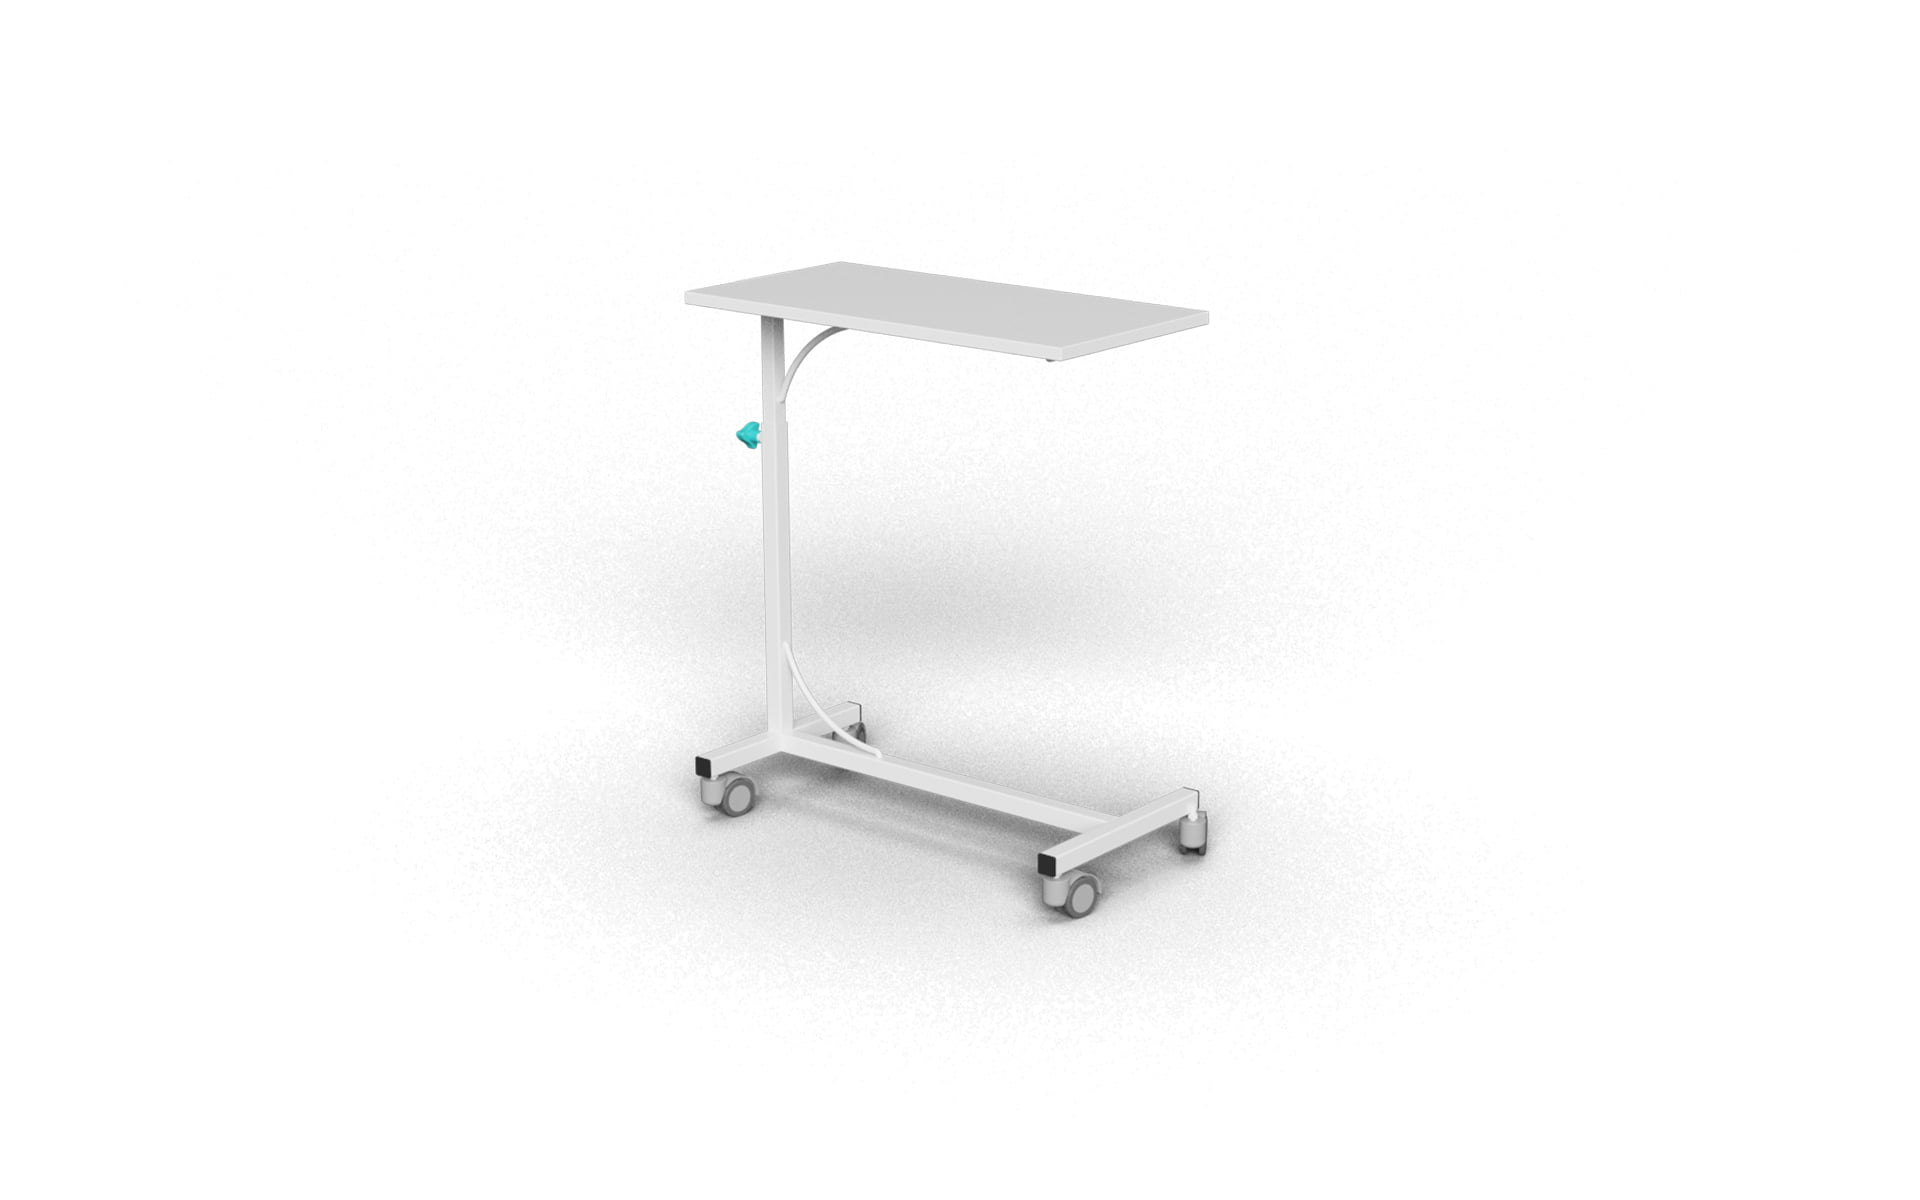 BASIC MODEL MDF OVERBED TABLE WITH MANUAL HEIGHT ADJUSTMENT